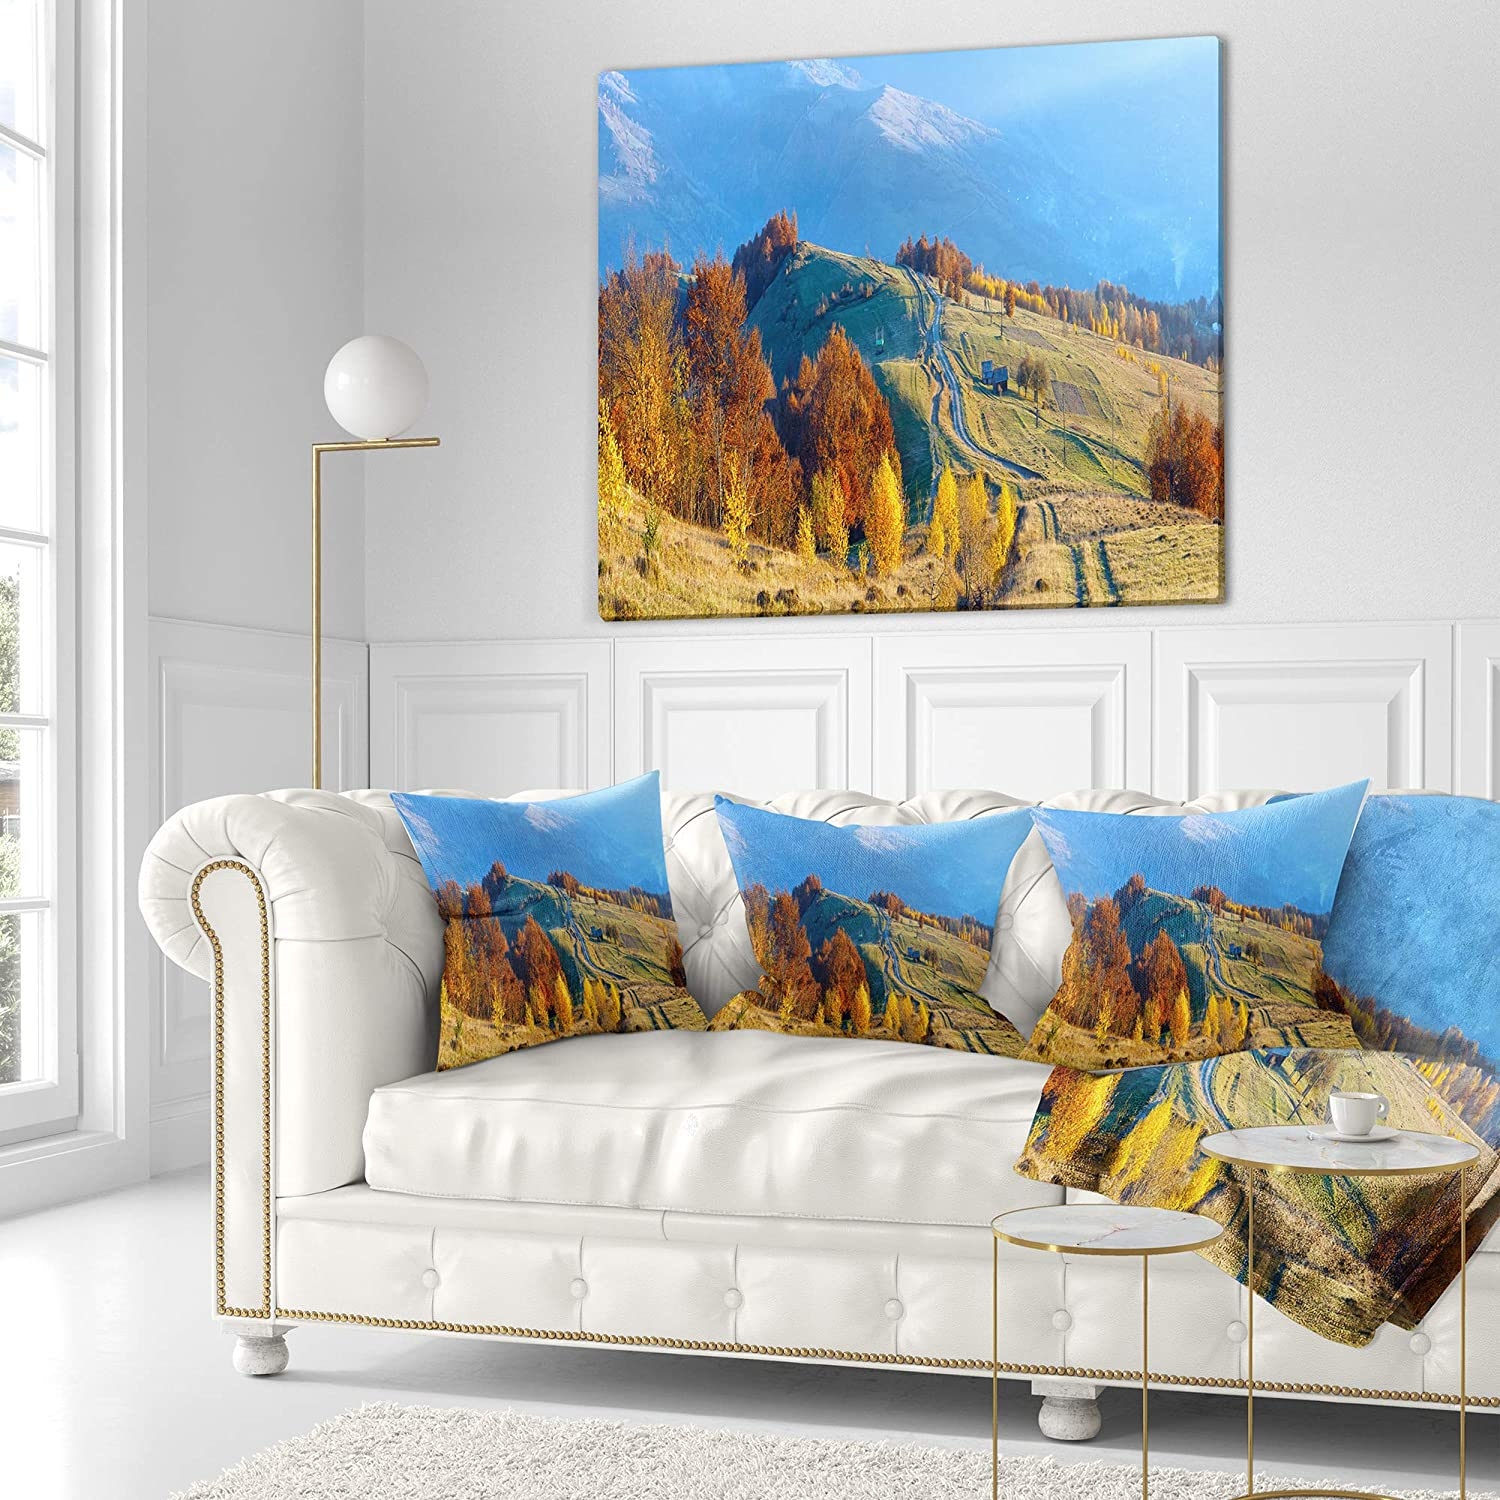 Insert Side Designart CU9935-26-26 Rural Road on Autumn Mountains Landscape Printed Cushion Cover for Living Room x 26 in in Sofa Throw Pillow 26 in